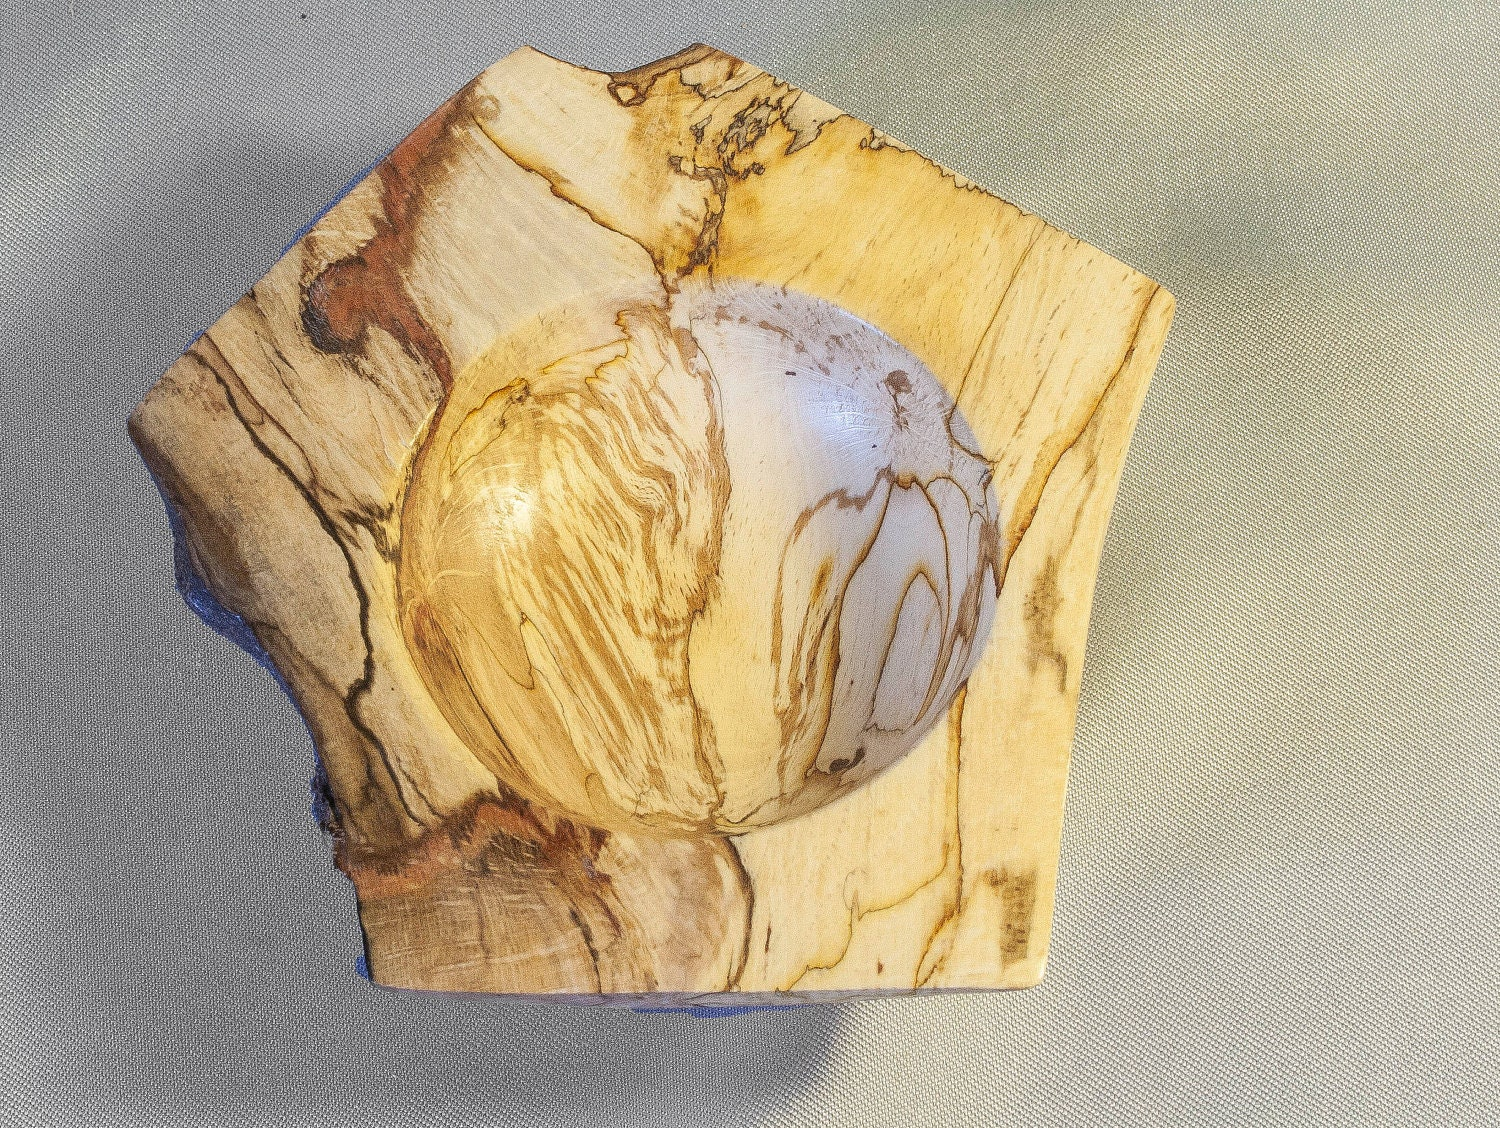 Made from Spalted Beech.